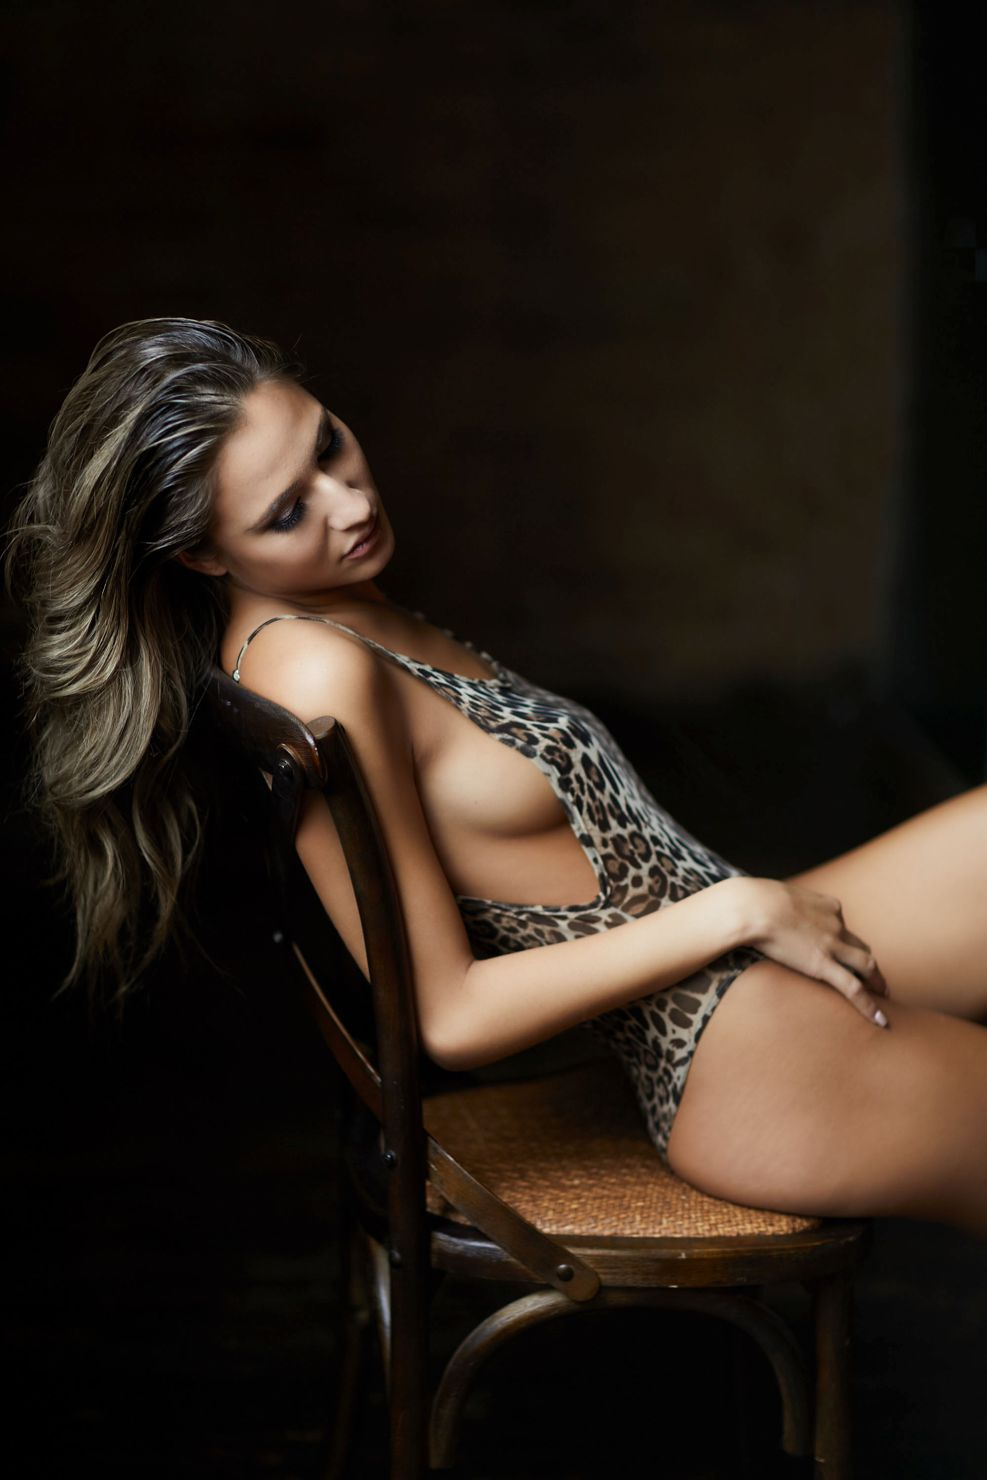 sexy photos boudoir chicago - Top 3 Reasons Why You Should Have a Boudoir Session.